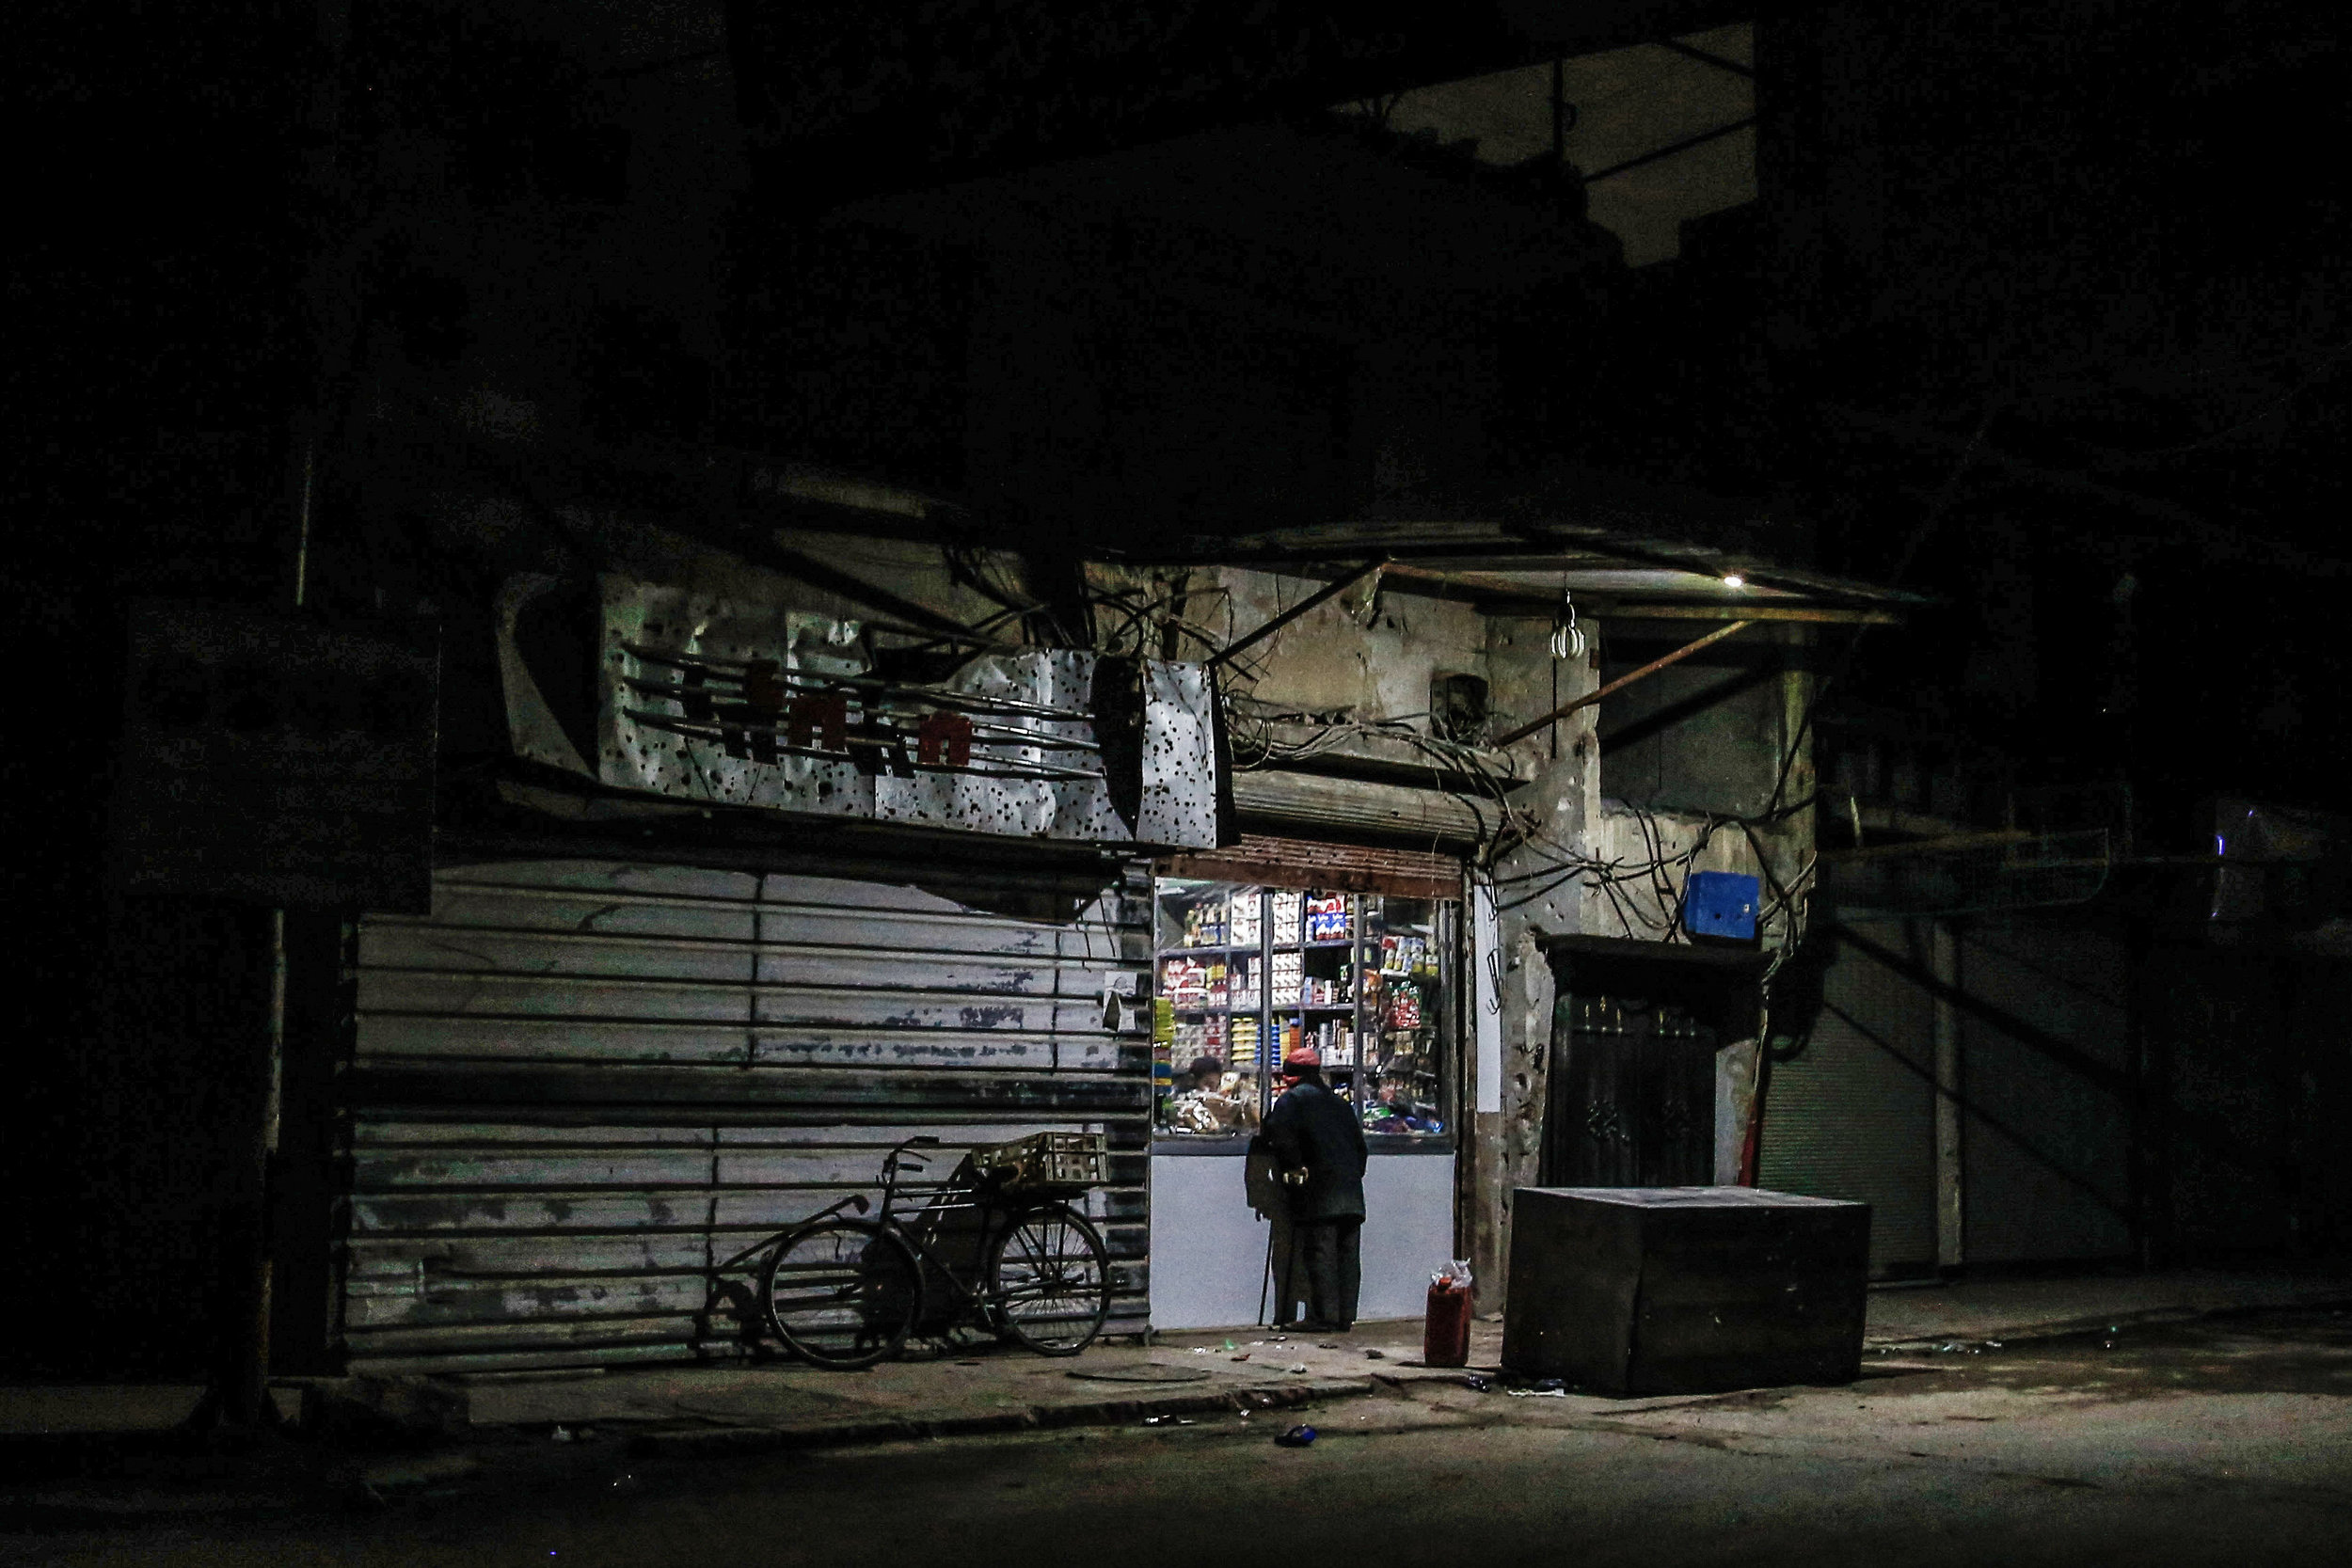 - A man buys groceries from a shop at night in the city of Douma.